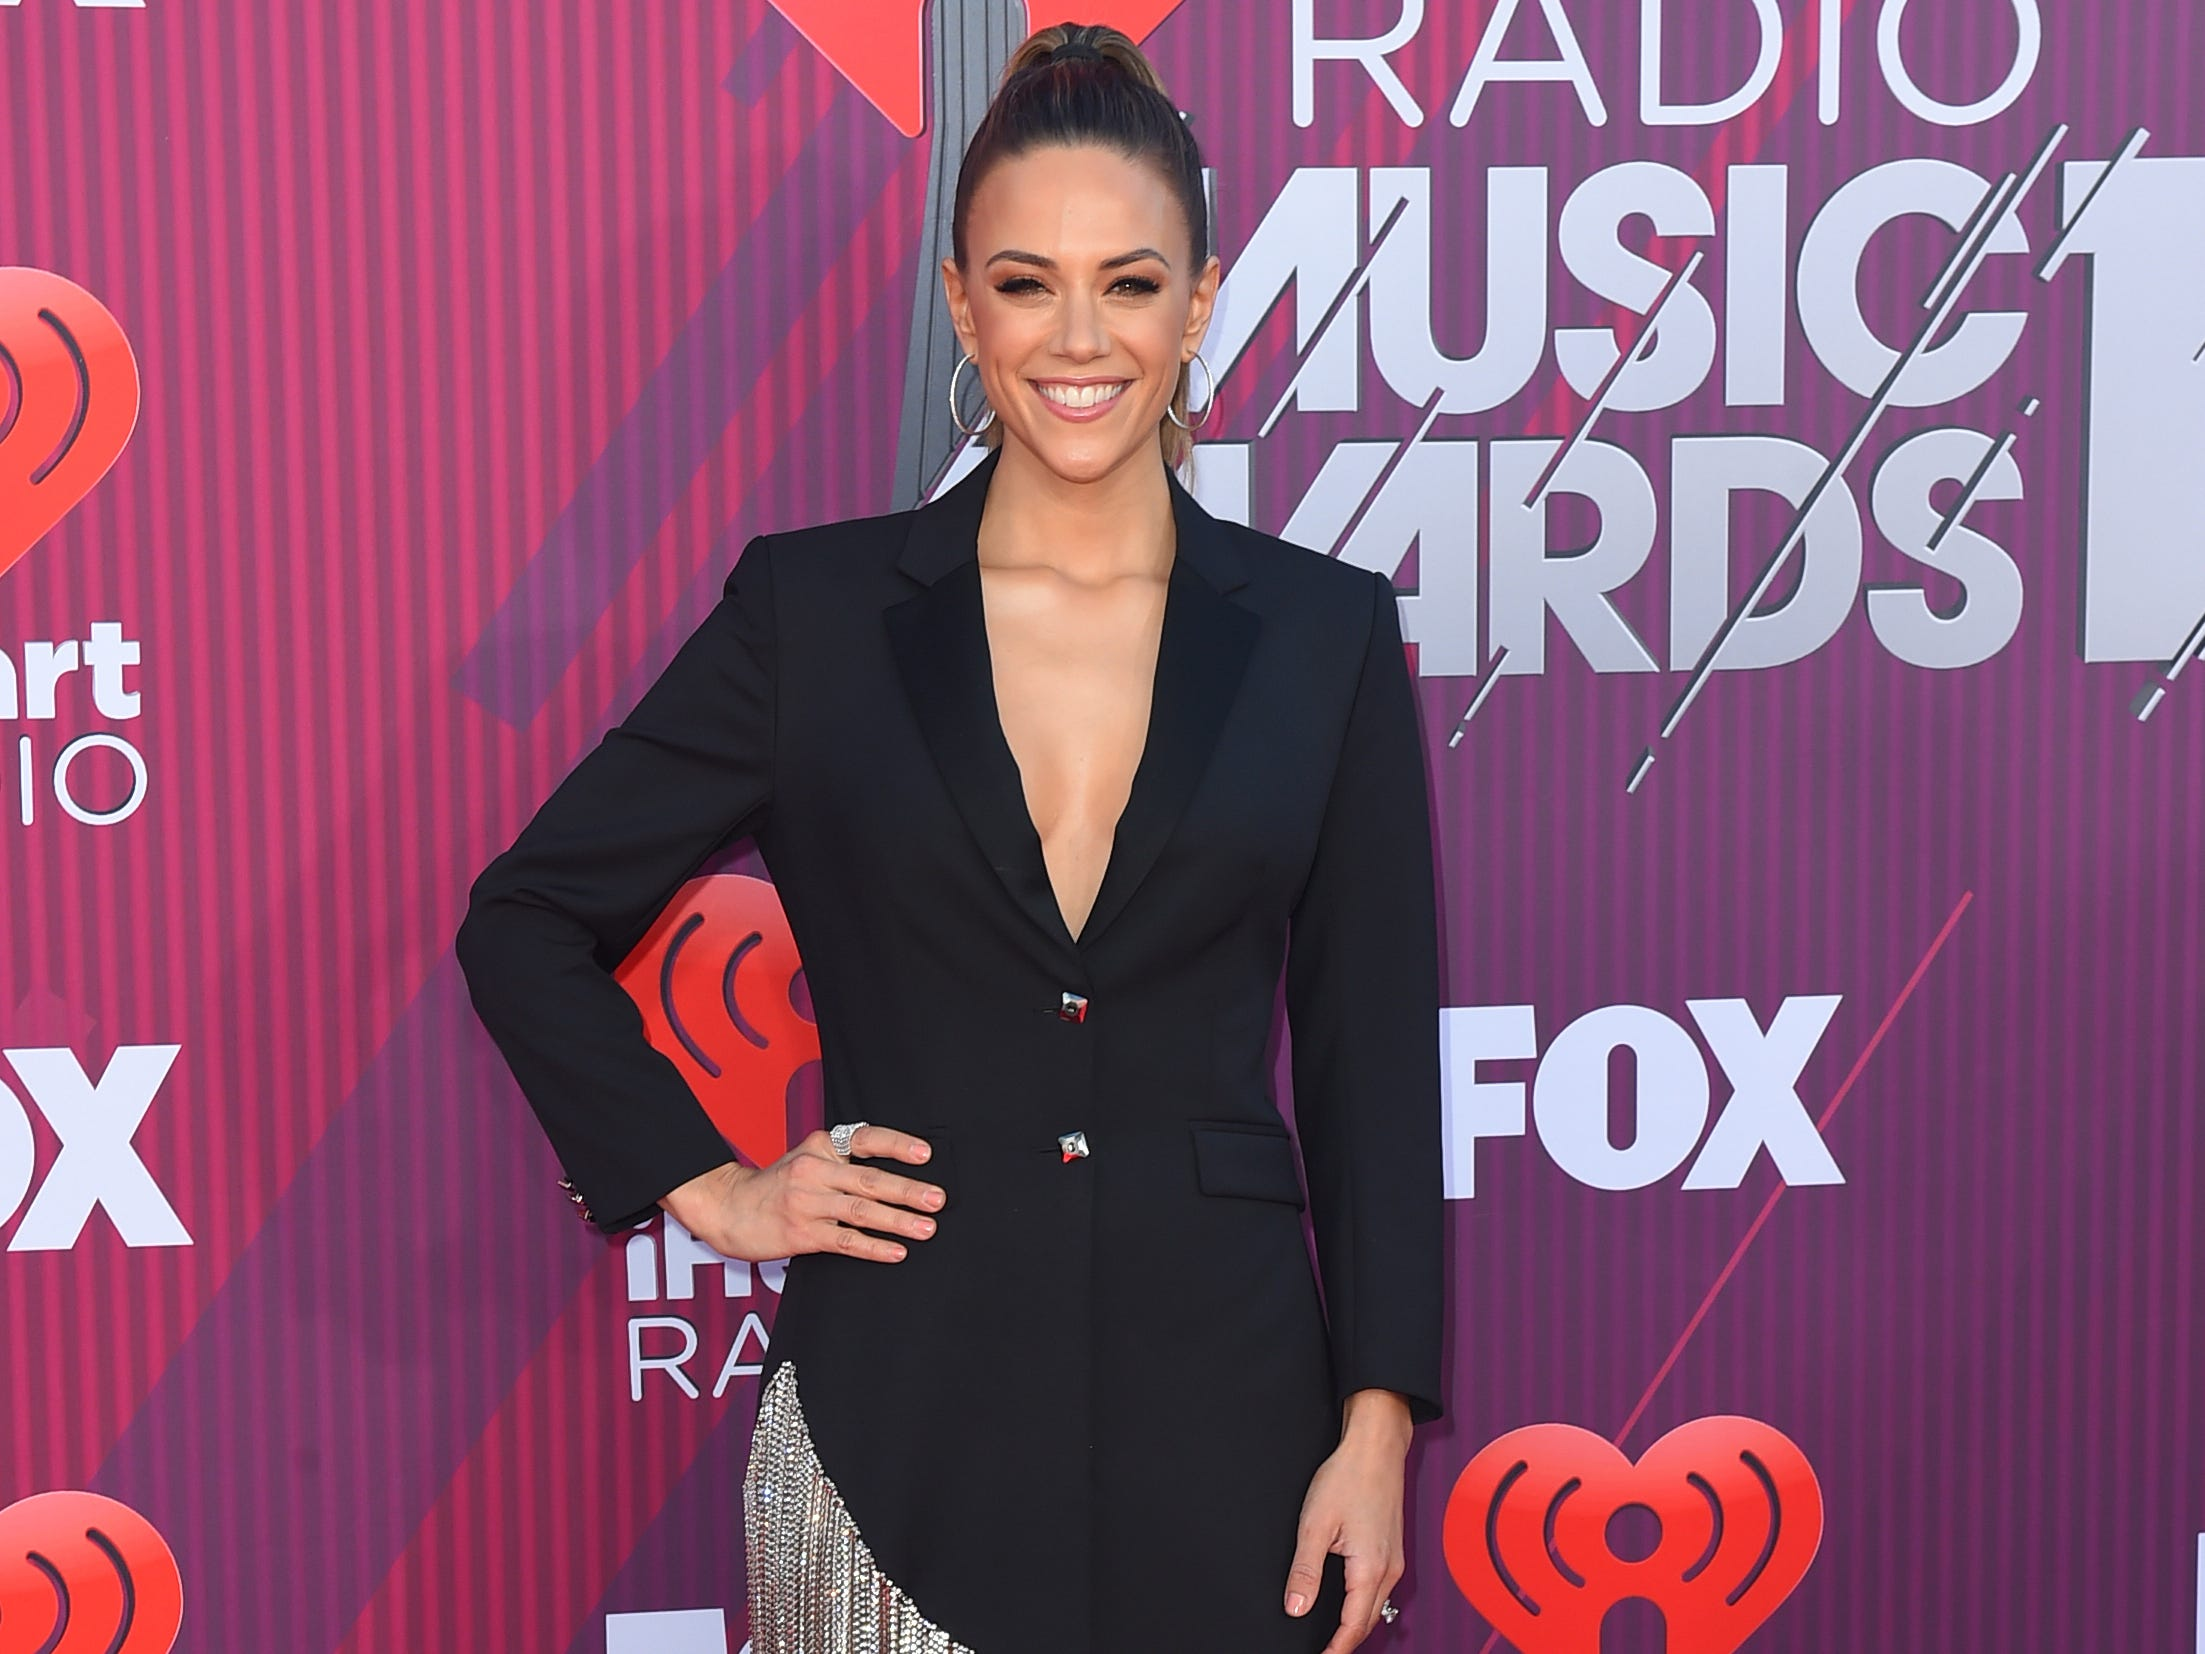 Jana Kramer arrives at the iHeartRadio Music Awards.